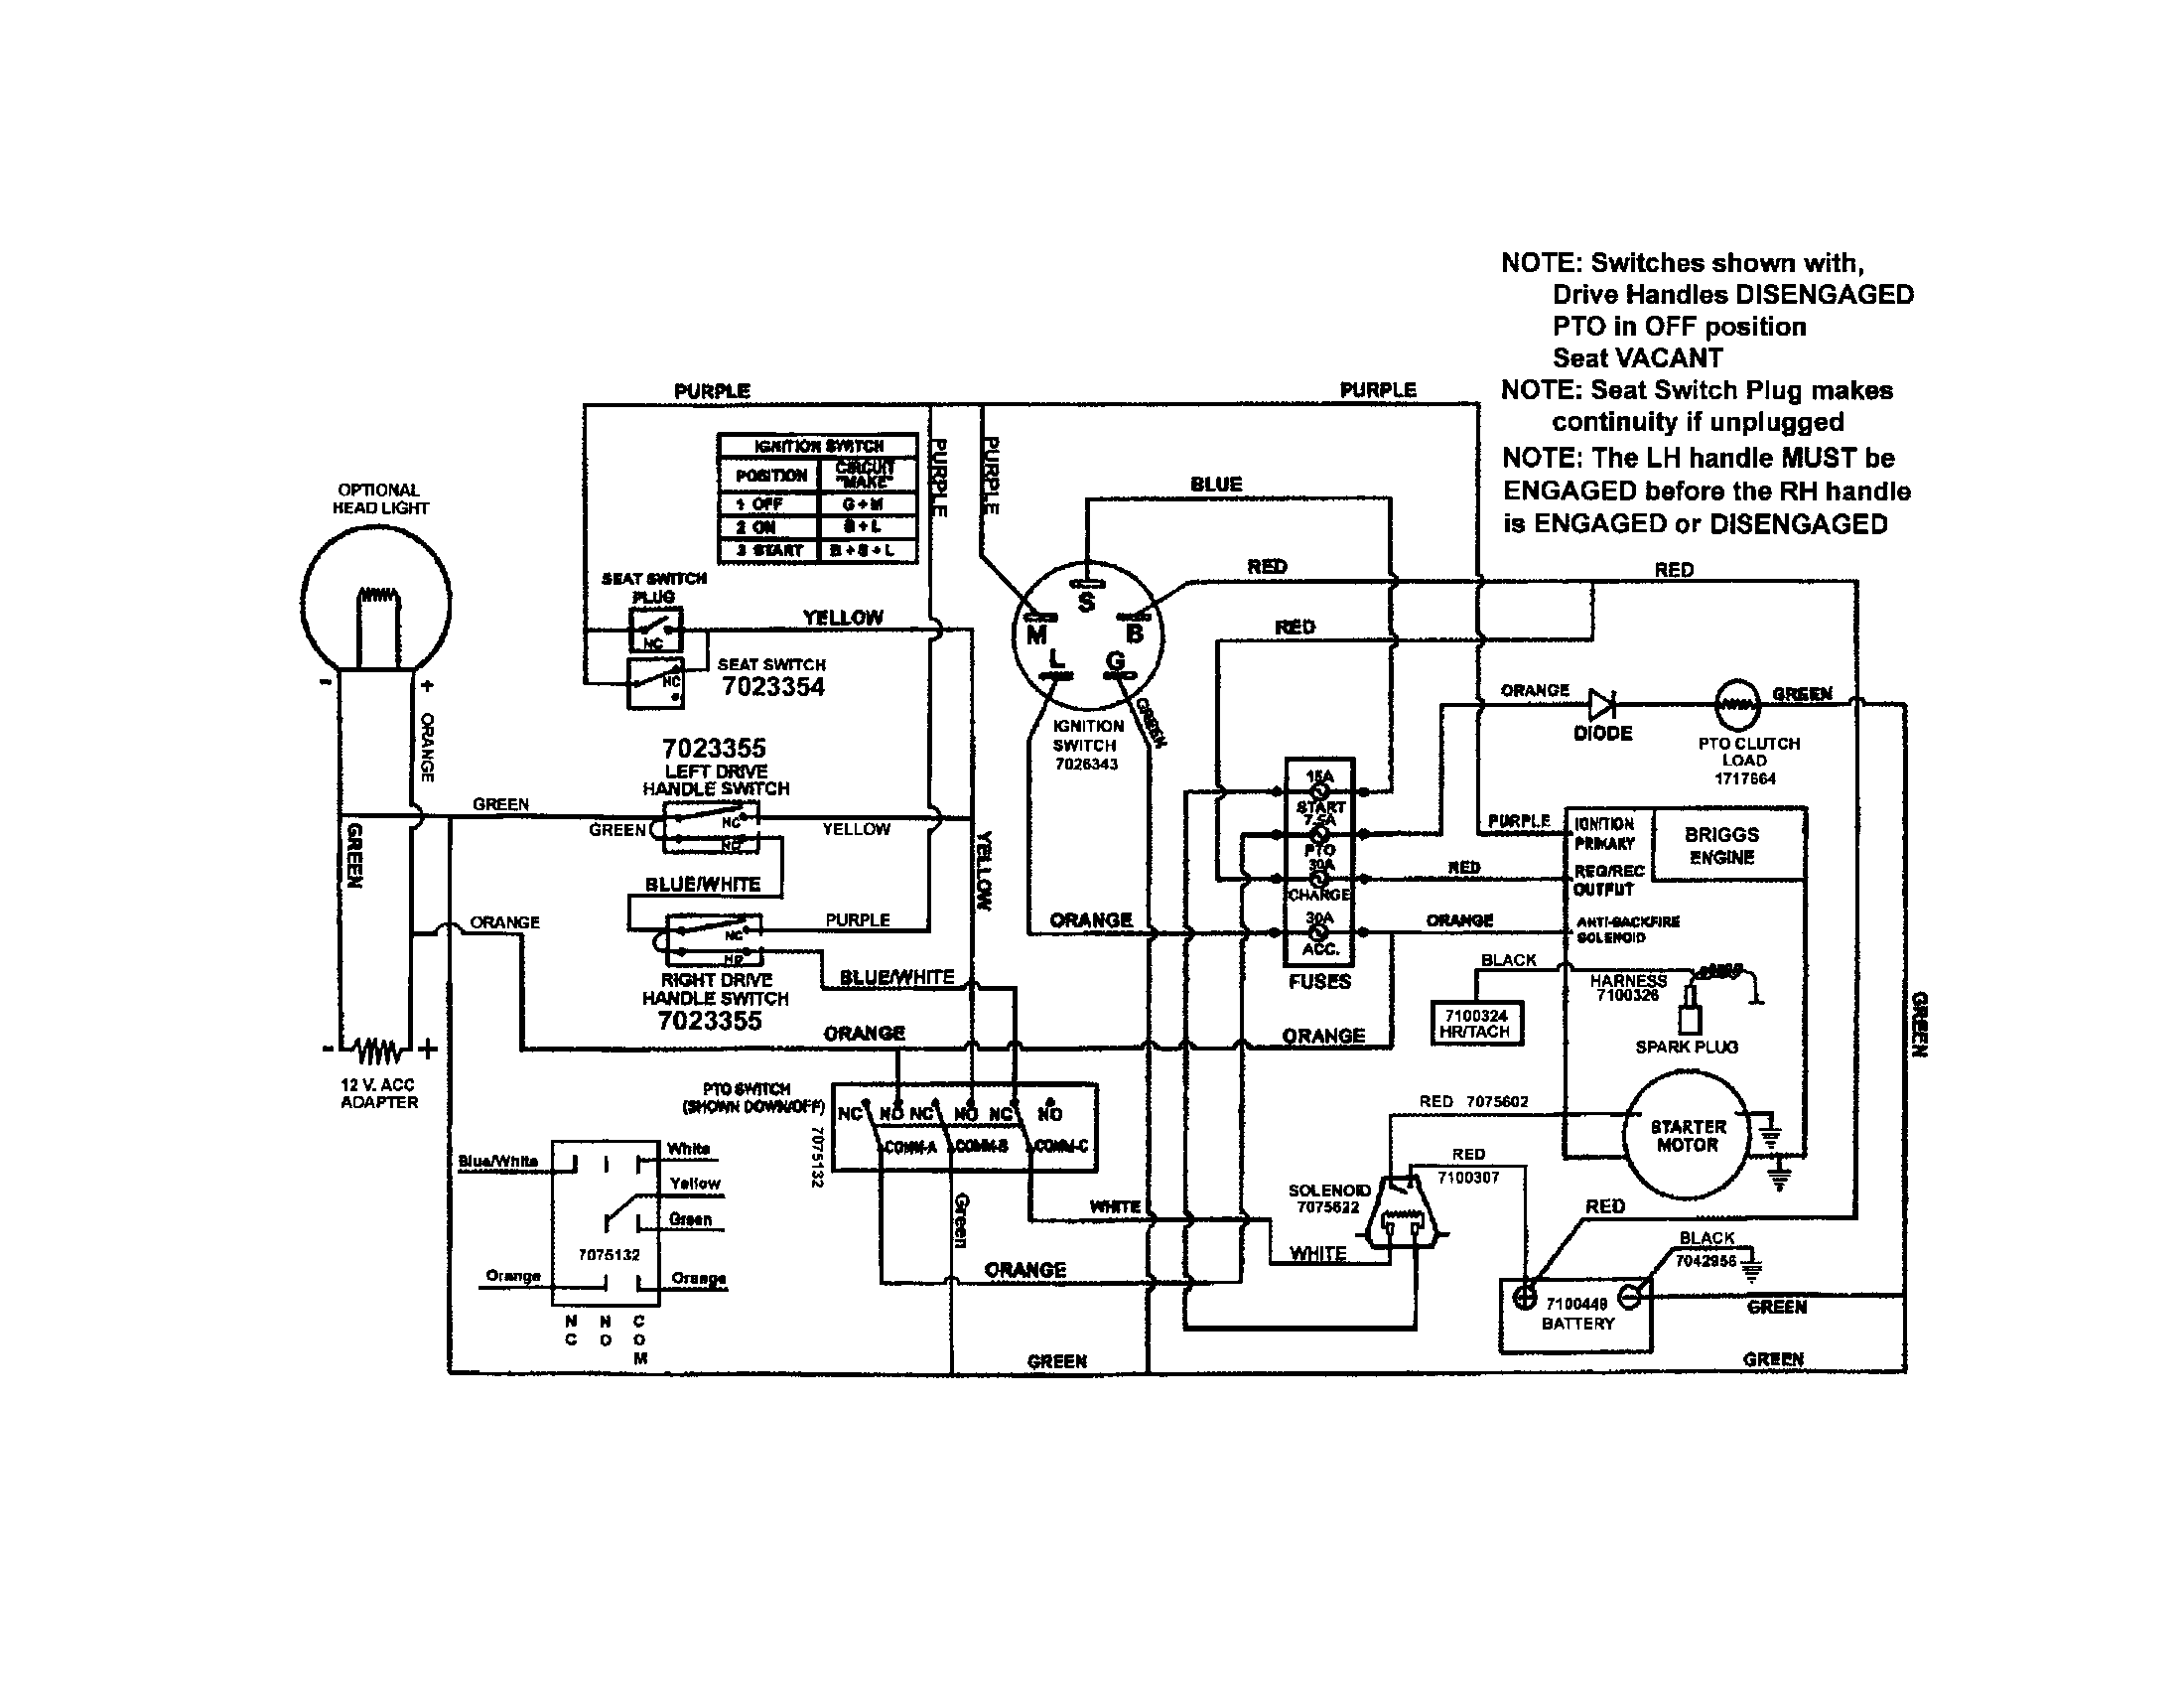 DIAGRAM] Briggs Stratton 16 Hp Twin Wiring Diagram FULL Version HD Quality Wiring  Diagram - DIAGRAMBIRD.SFISP.ITsfisp.it